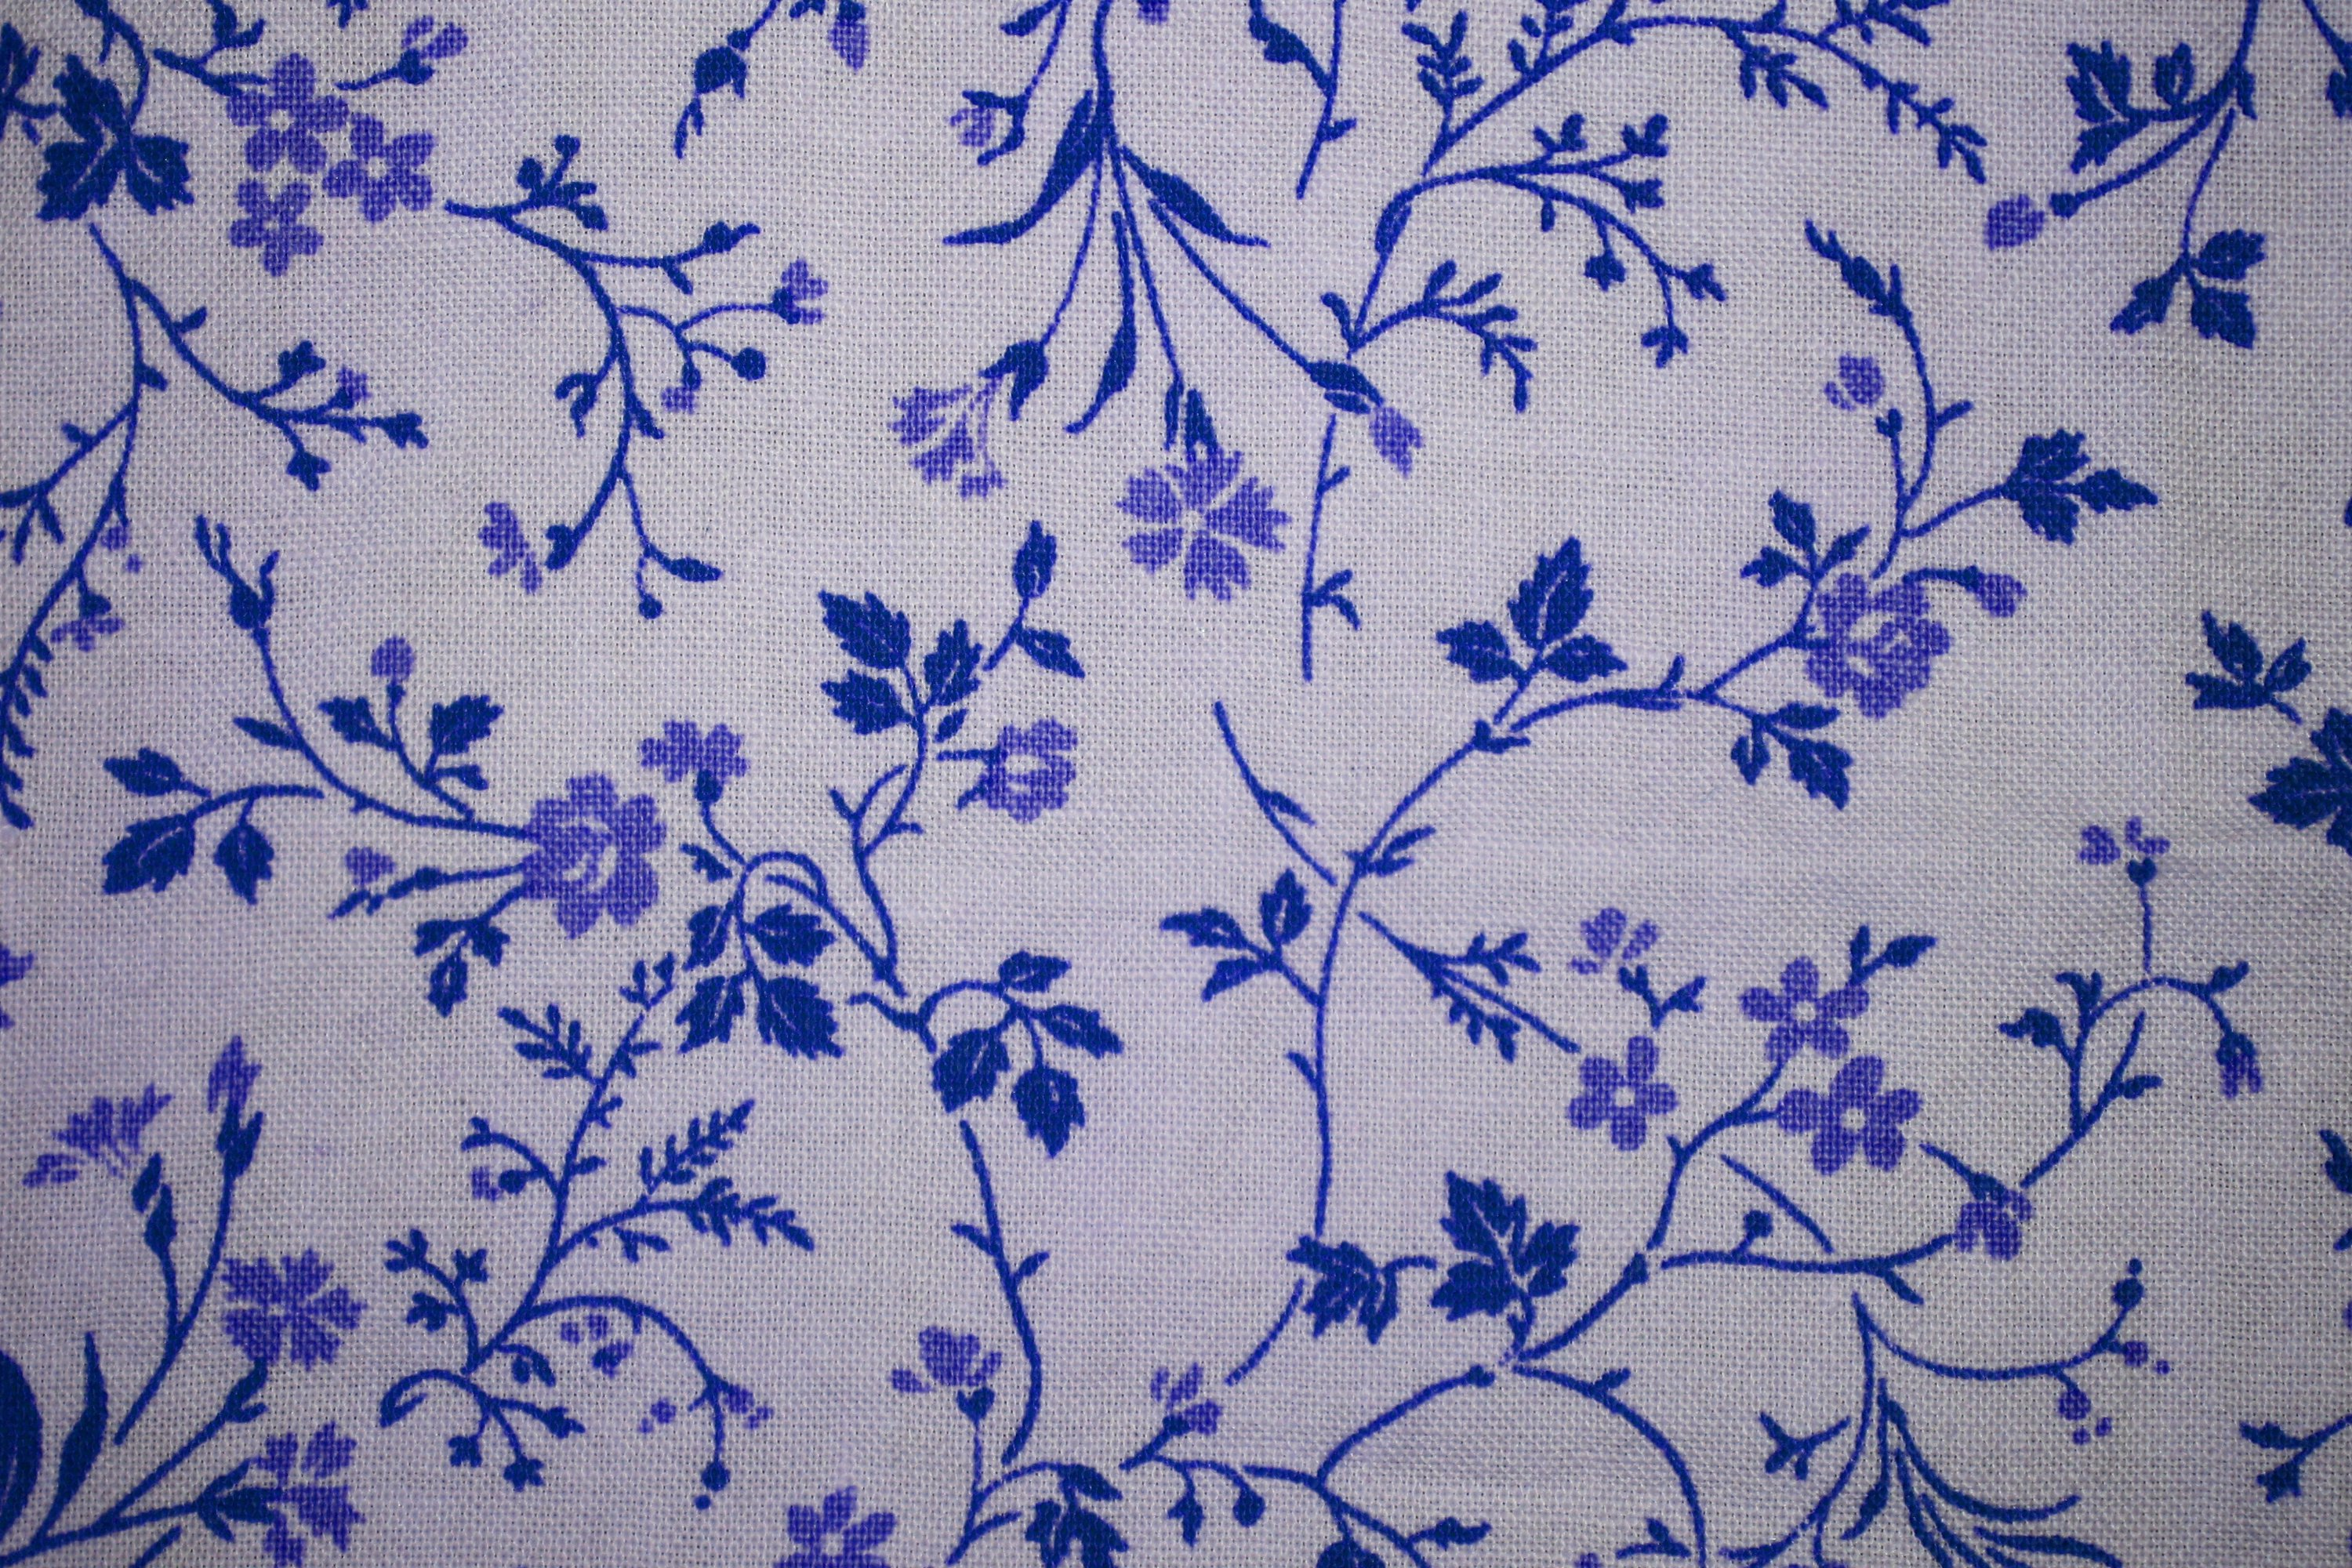 Blue on White Floral Print Fabric Texture   High Resolution Photo 3000x2000